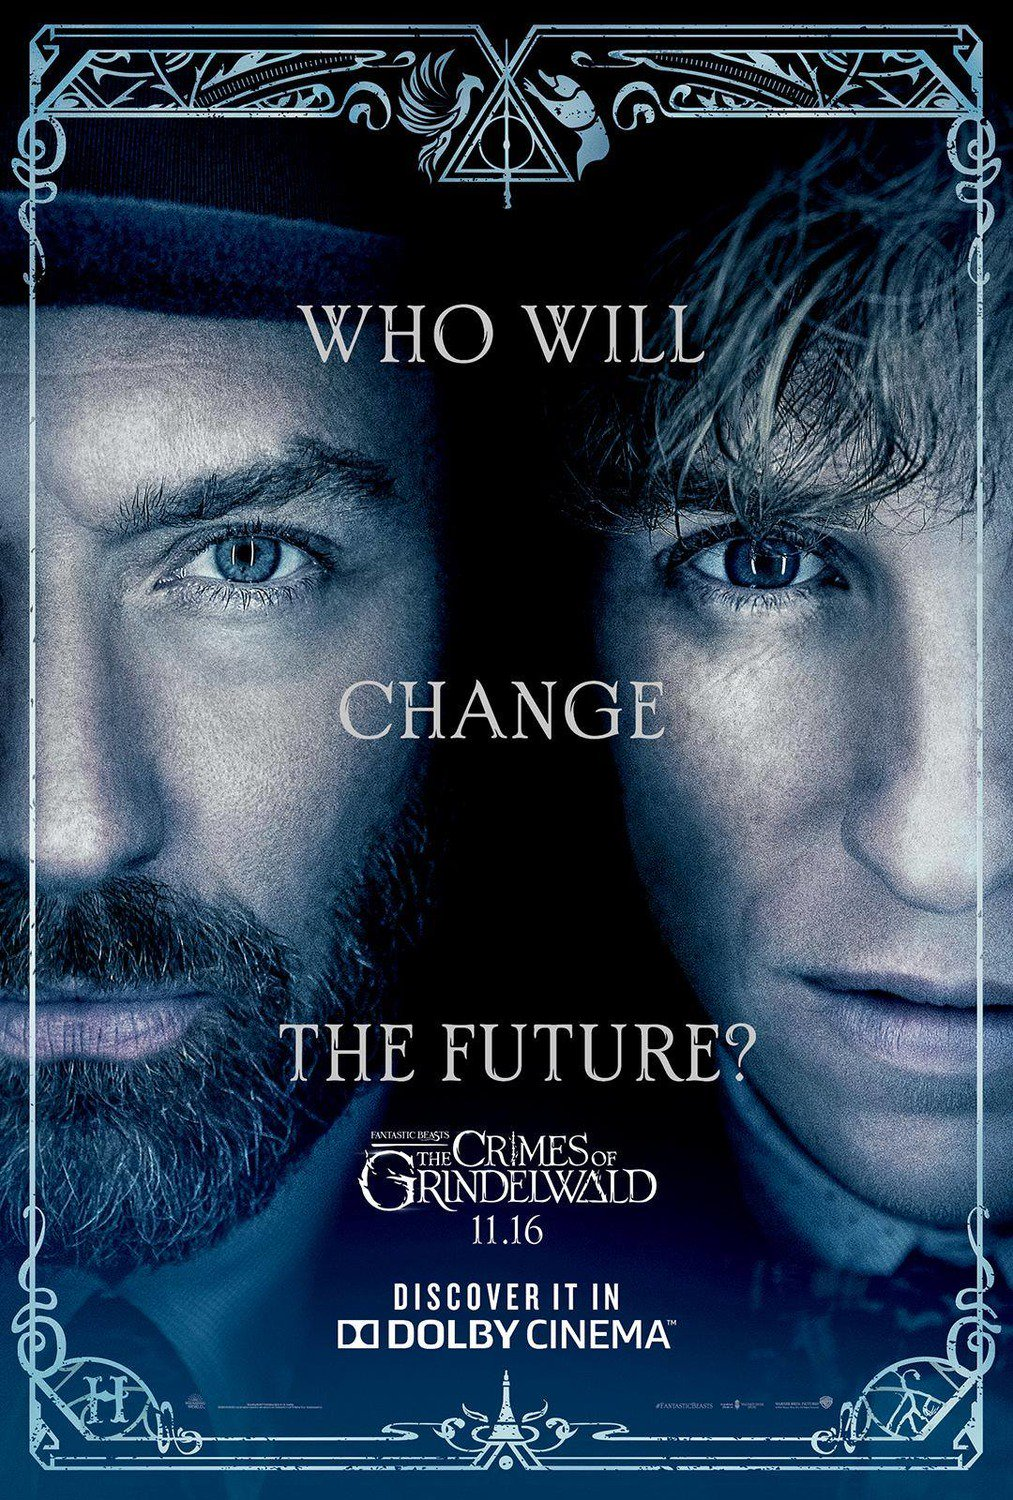 Who will change the future in Fantastic Beasts poster?